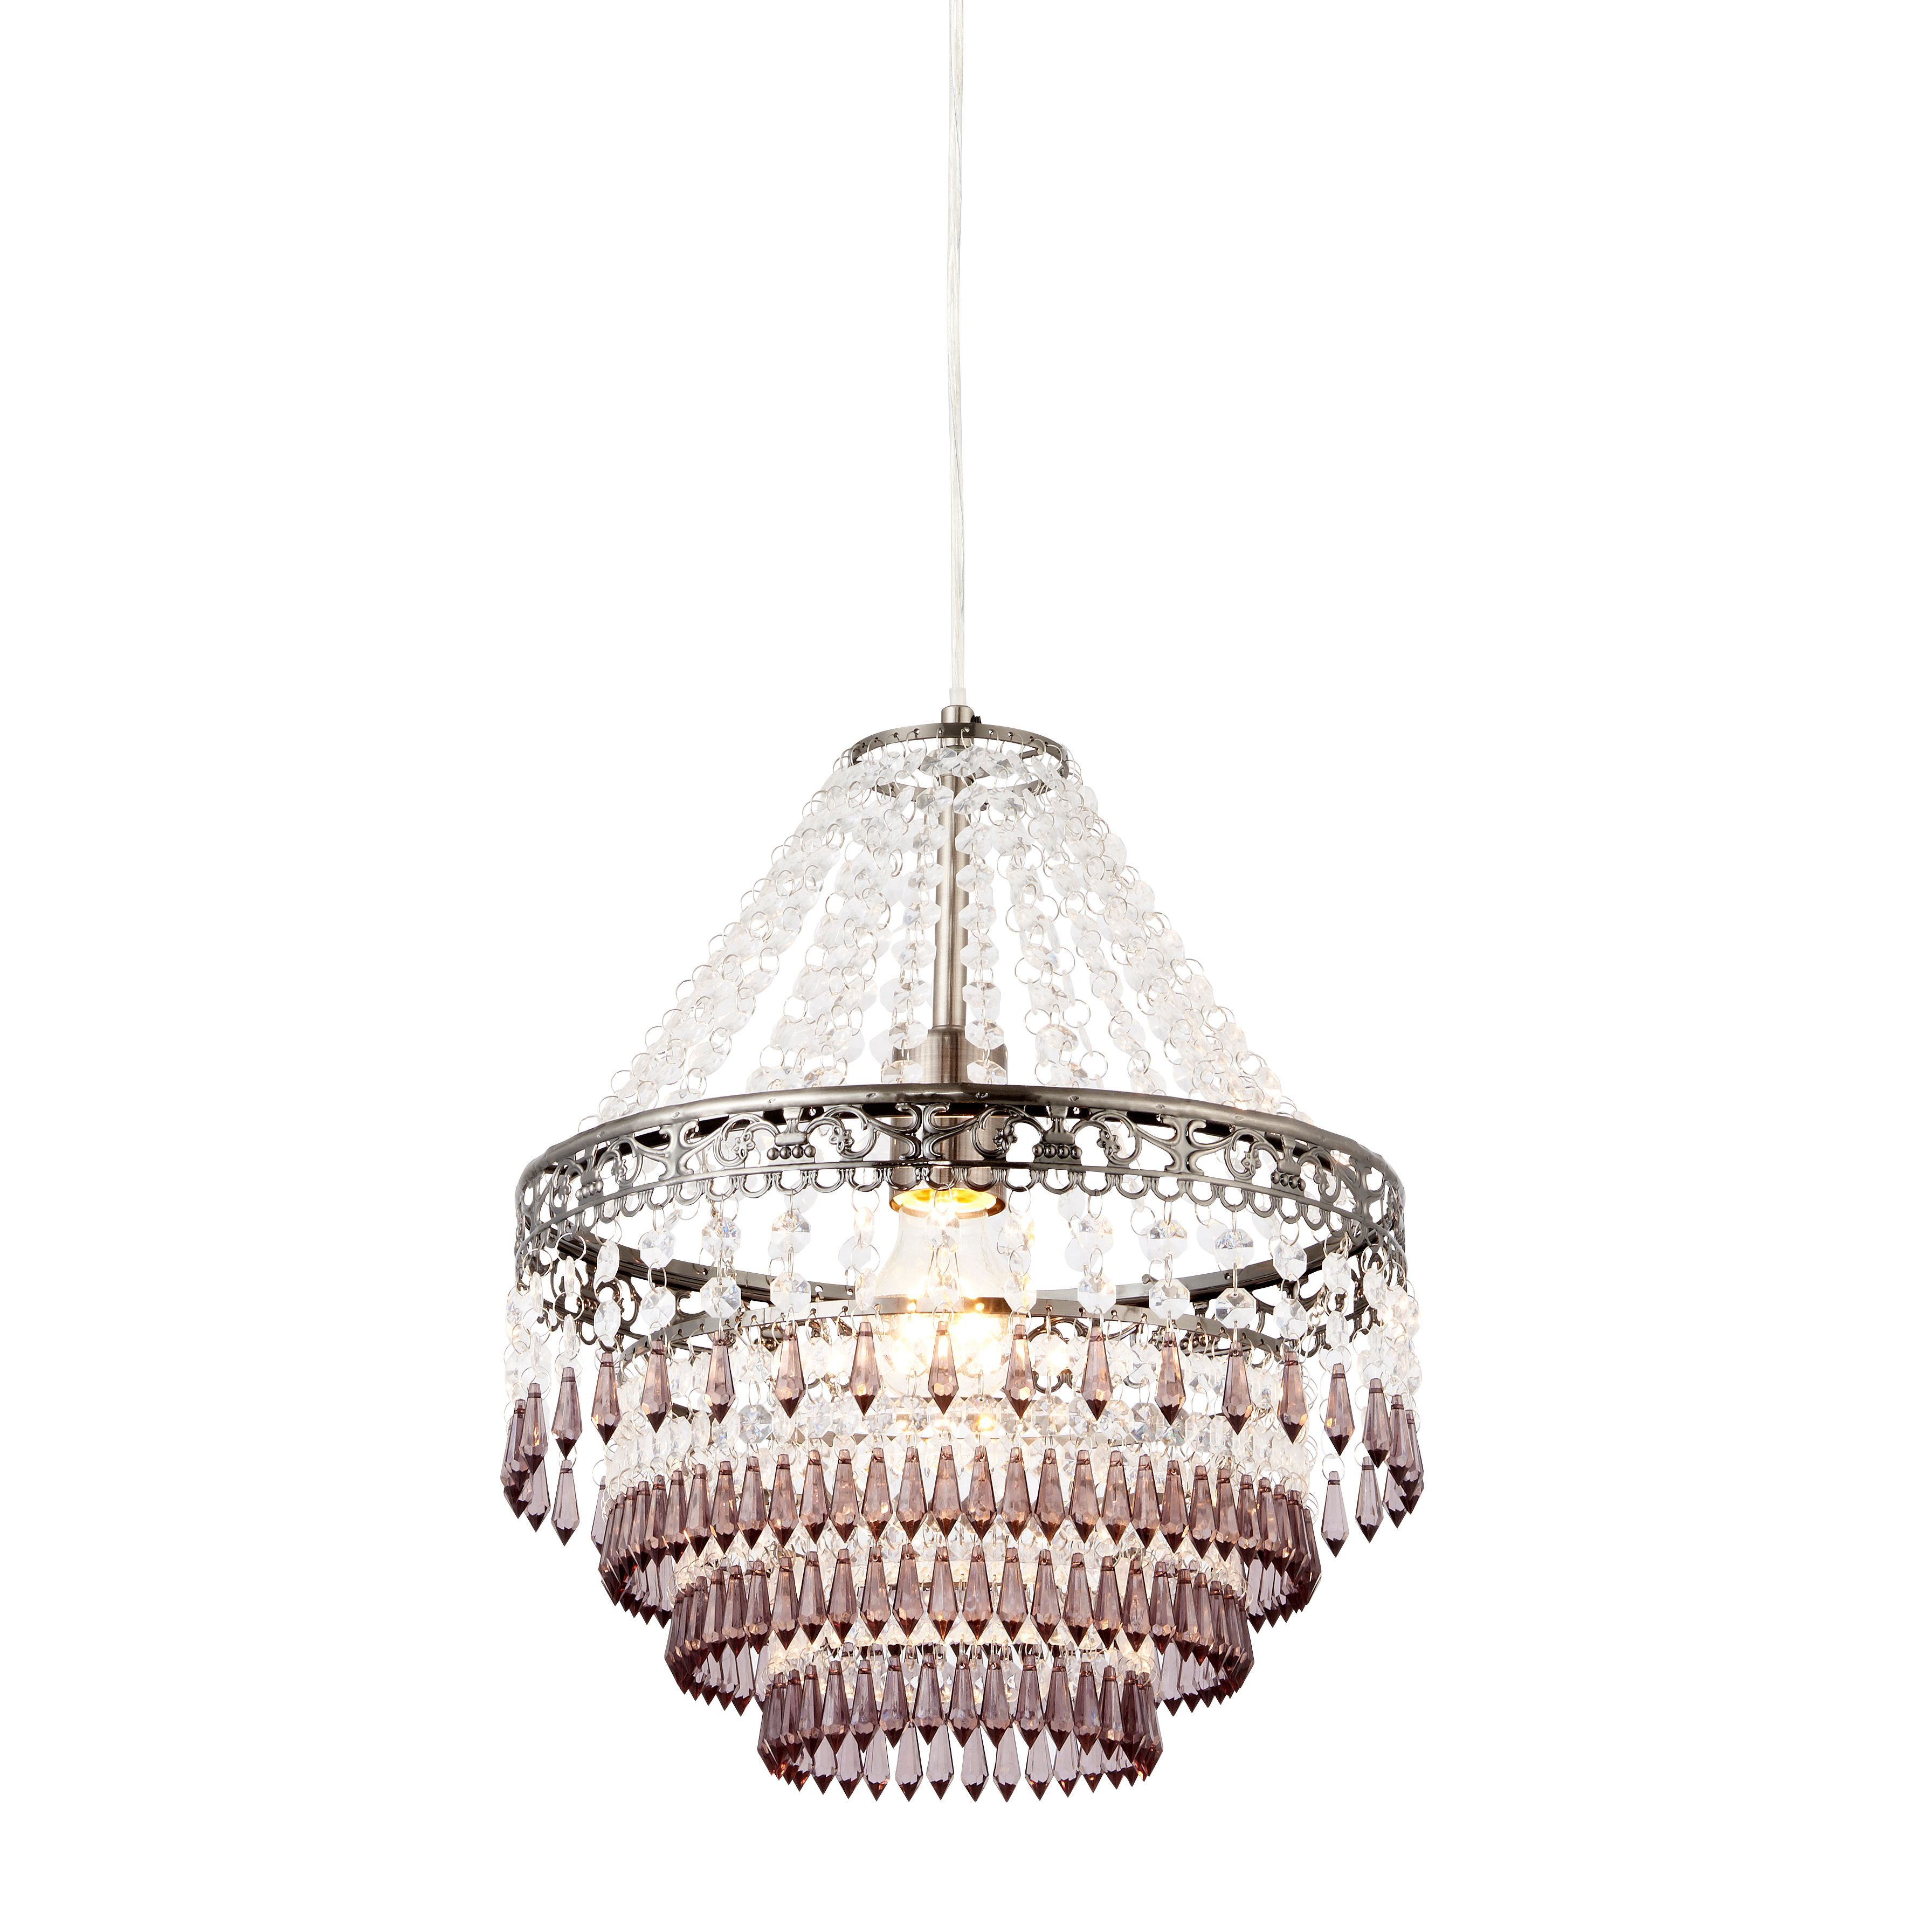 Corinna crystal beaded pewter pendant ceiling light pewter corinna crystal beaded pewter pendant ceiling light aloadofball Image collections